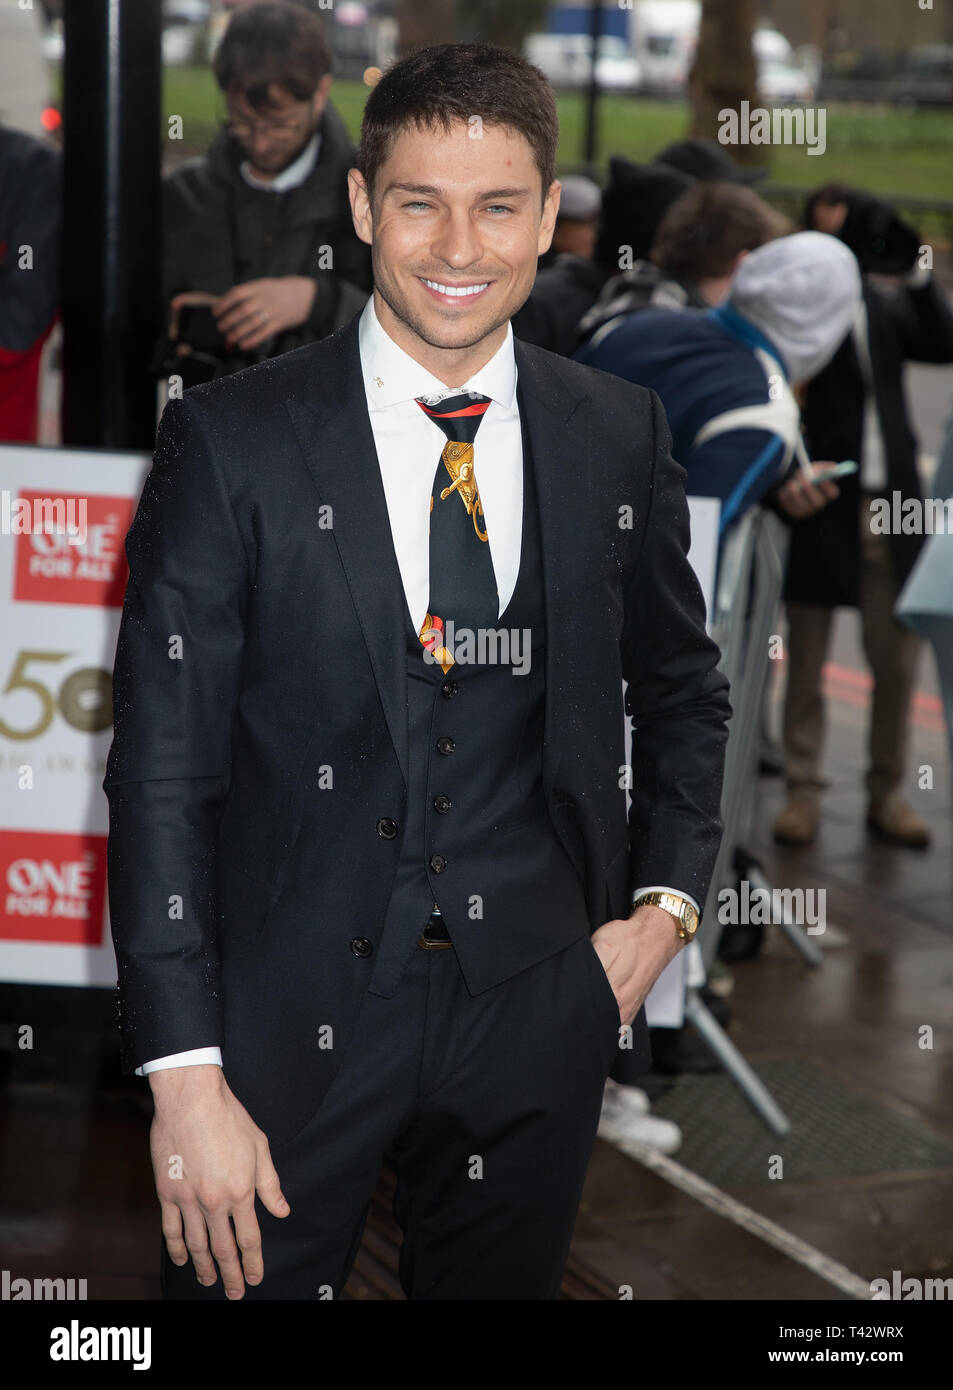 TRIC Awards 2019 held at the Grosvenor House Hotel  Featuring: Joey Essex Where: London, United Kingdom When: 12 Mar 2019 Credit: WENN.com - Stock Image